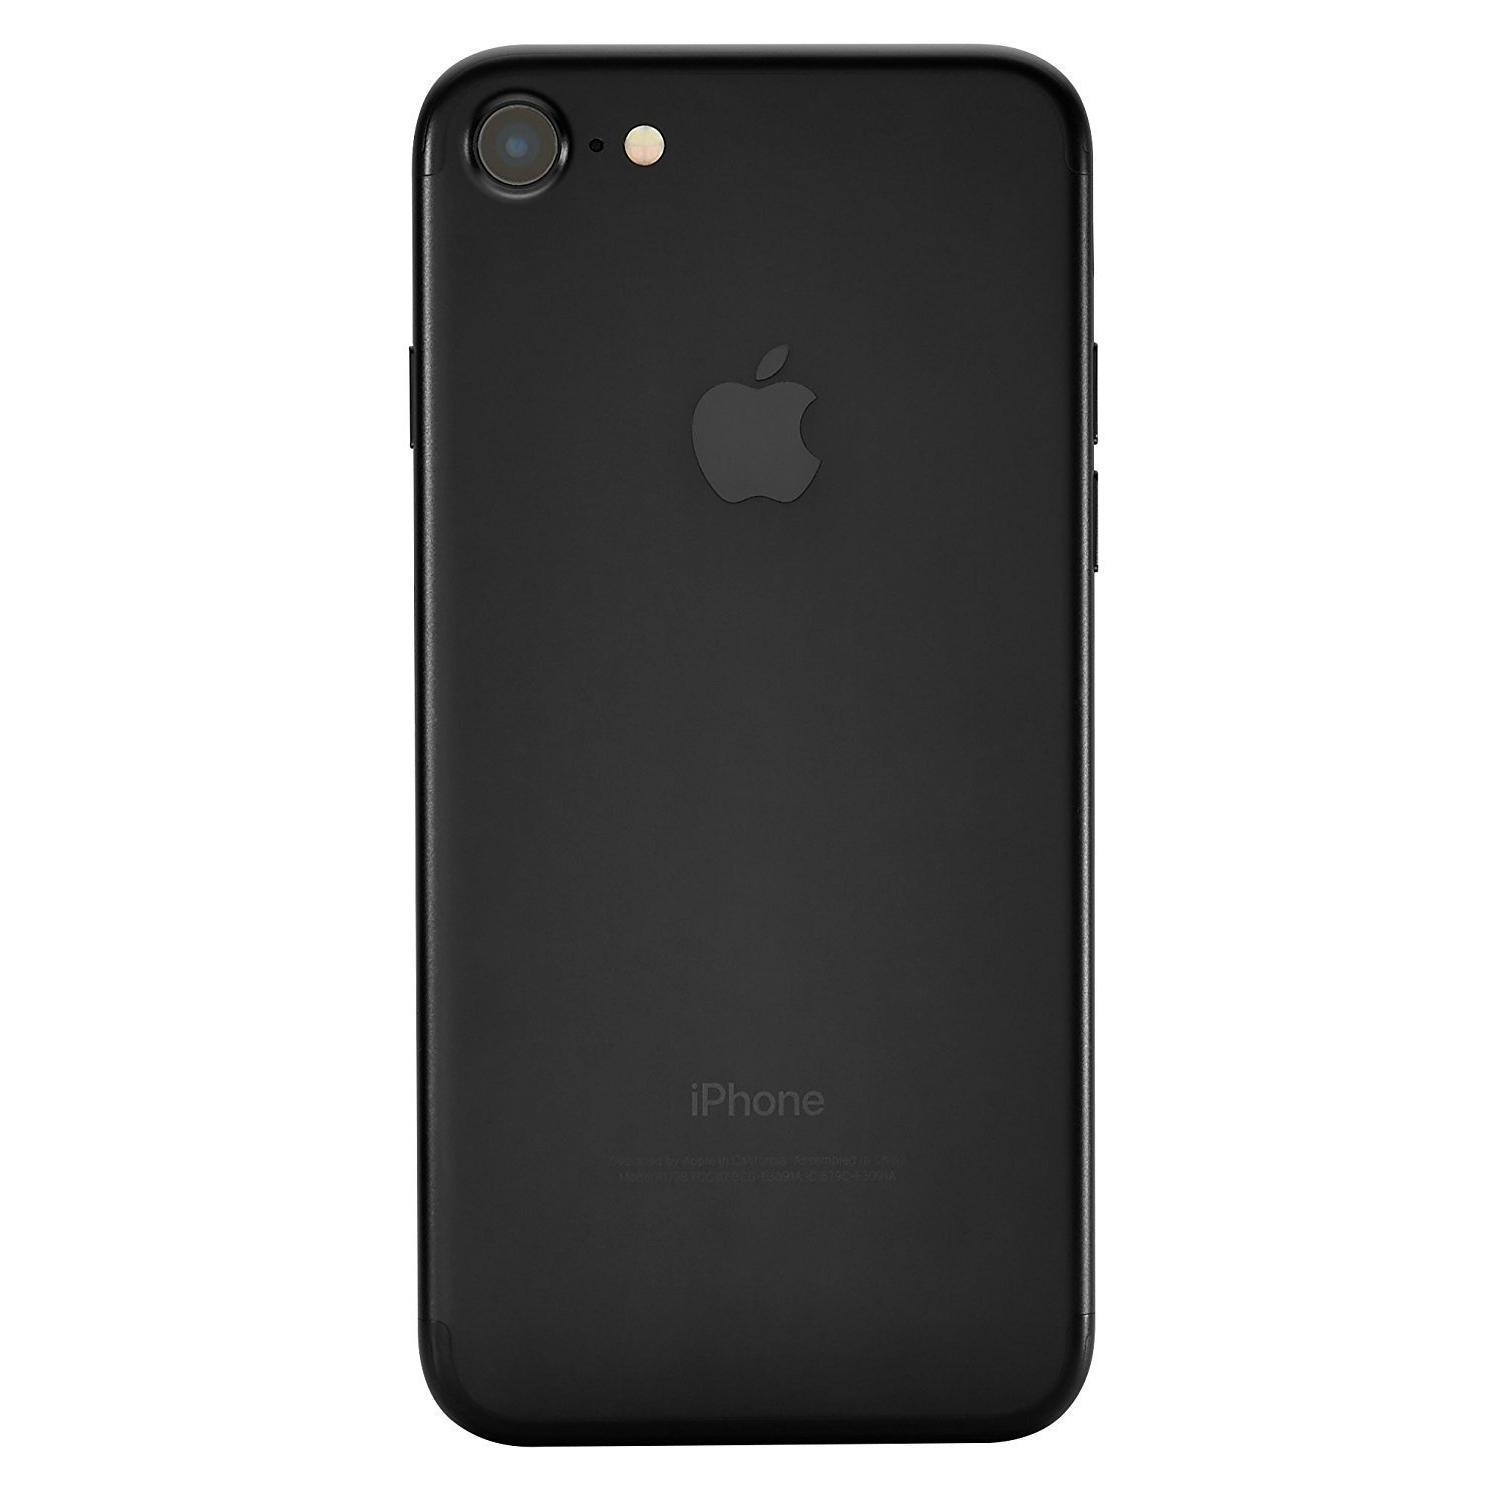 wts apple iphone 7 wholesale refurbished unlocked qty 5 usd. Black Bedroom Furniture Sets. Home Design Ideas